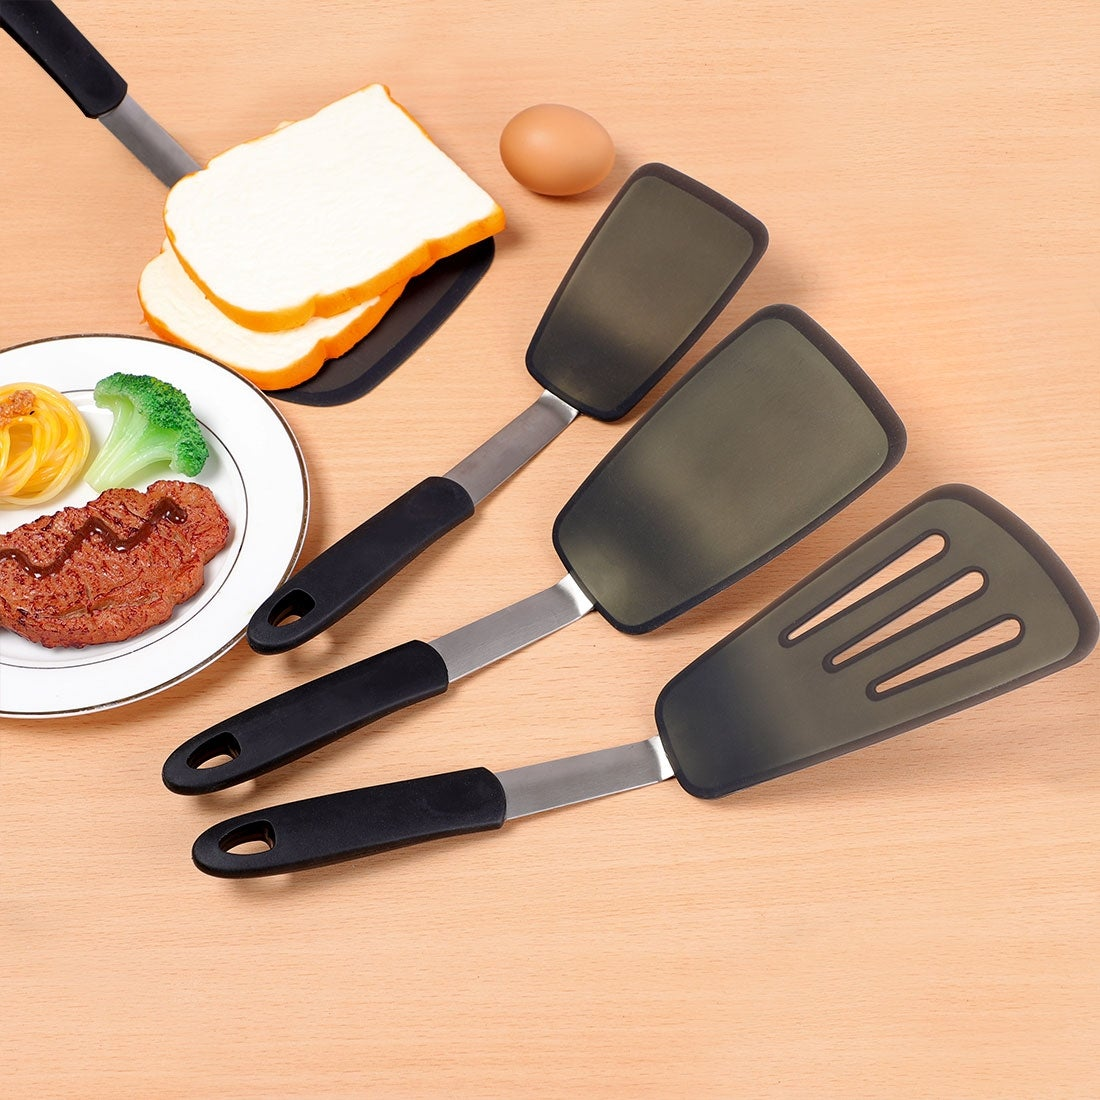 Black Silicone Spatula great for Baking